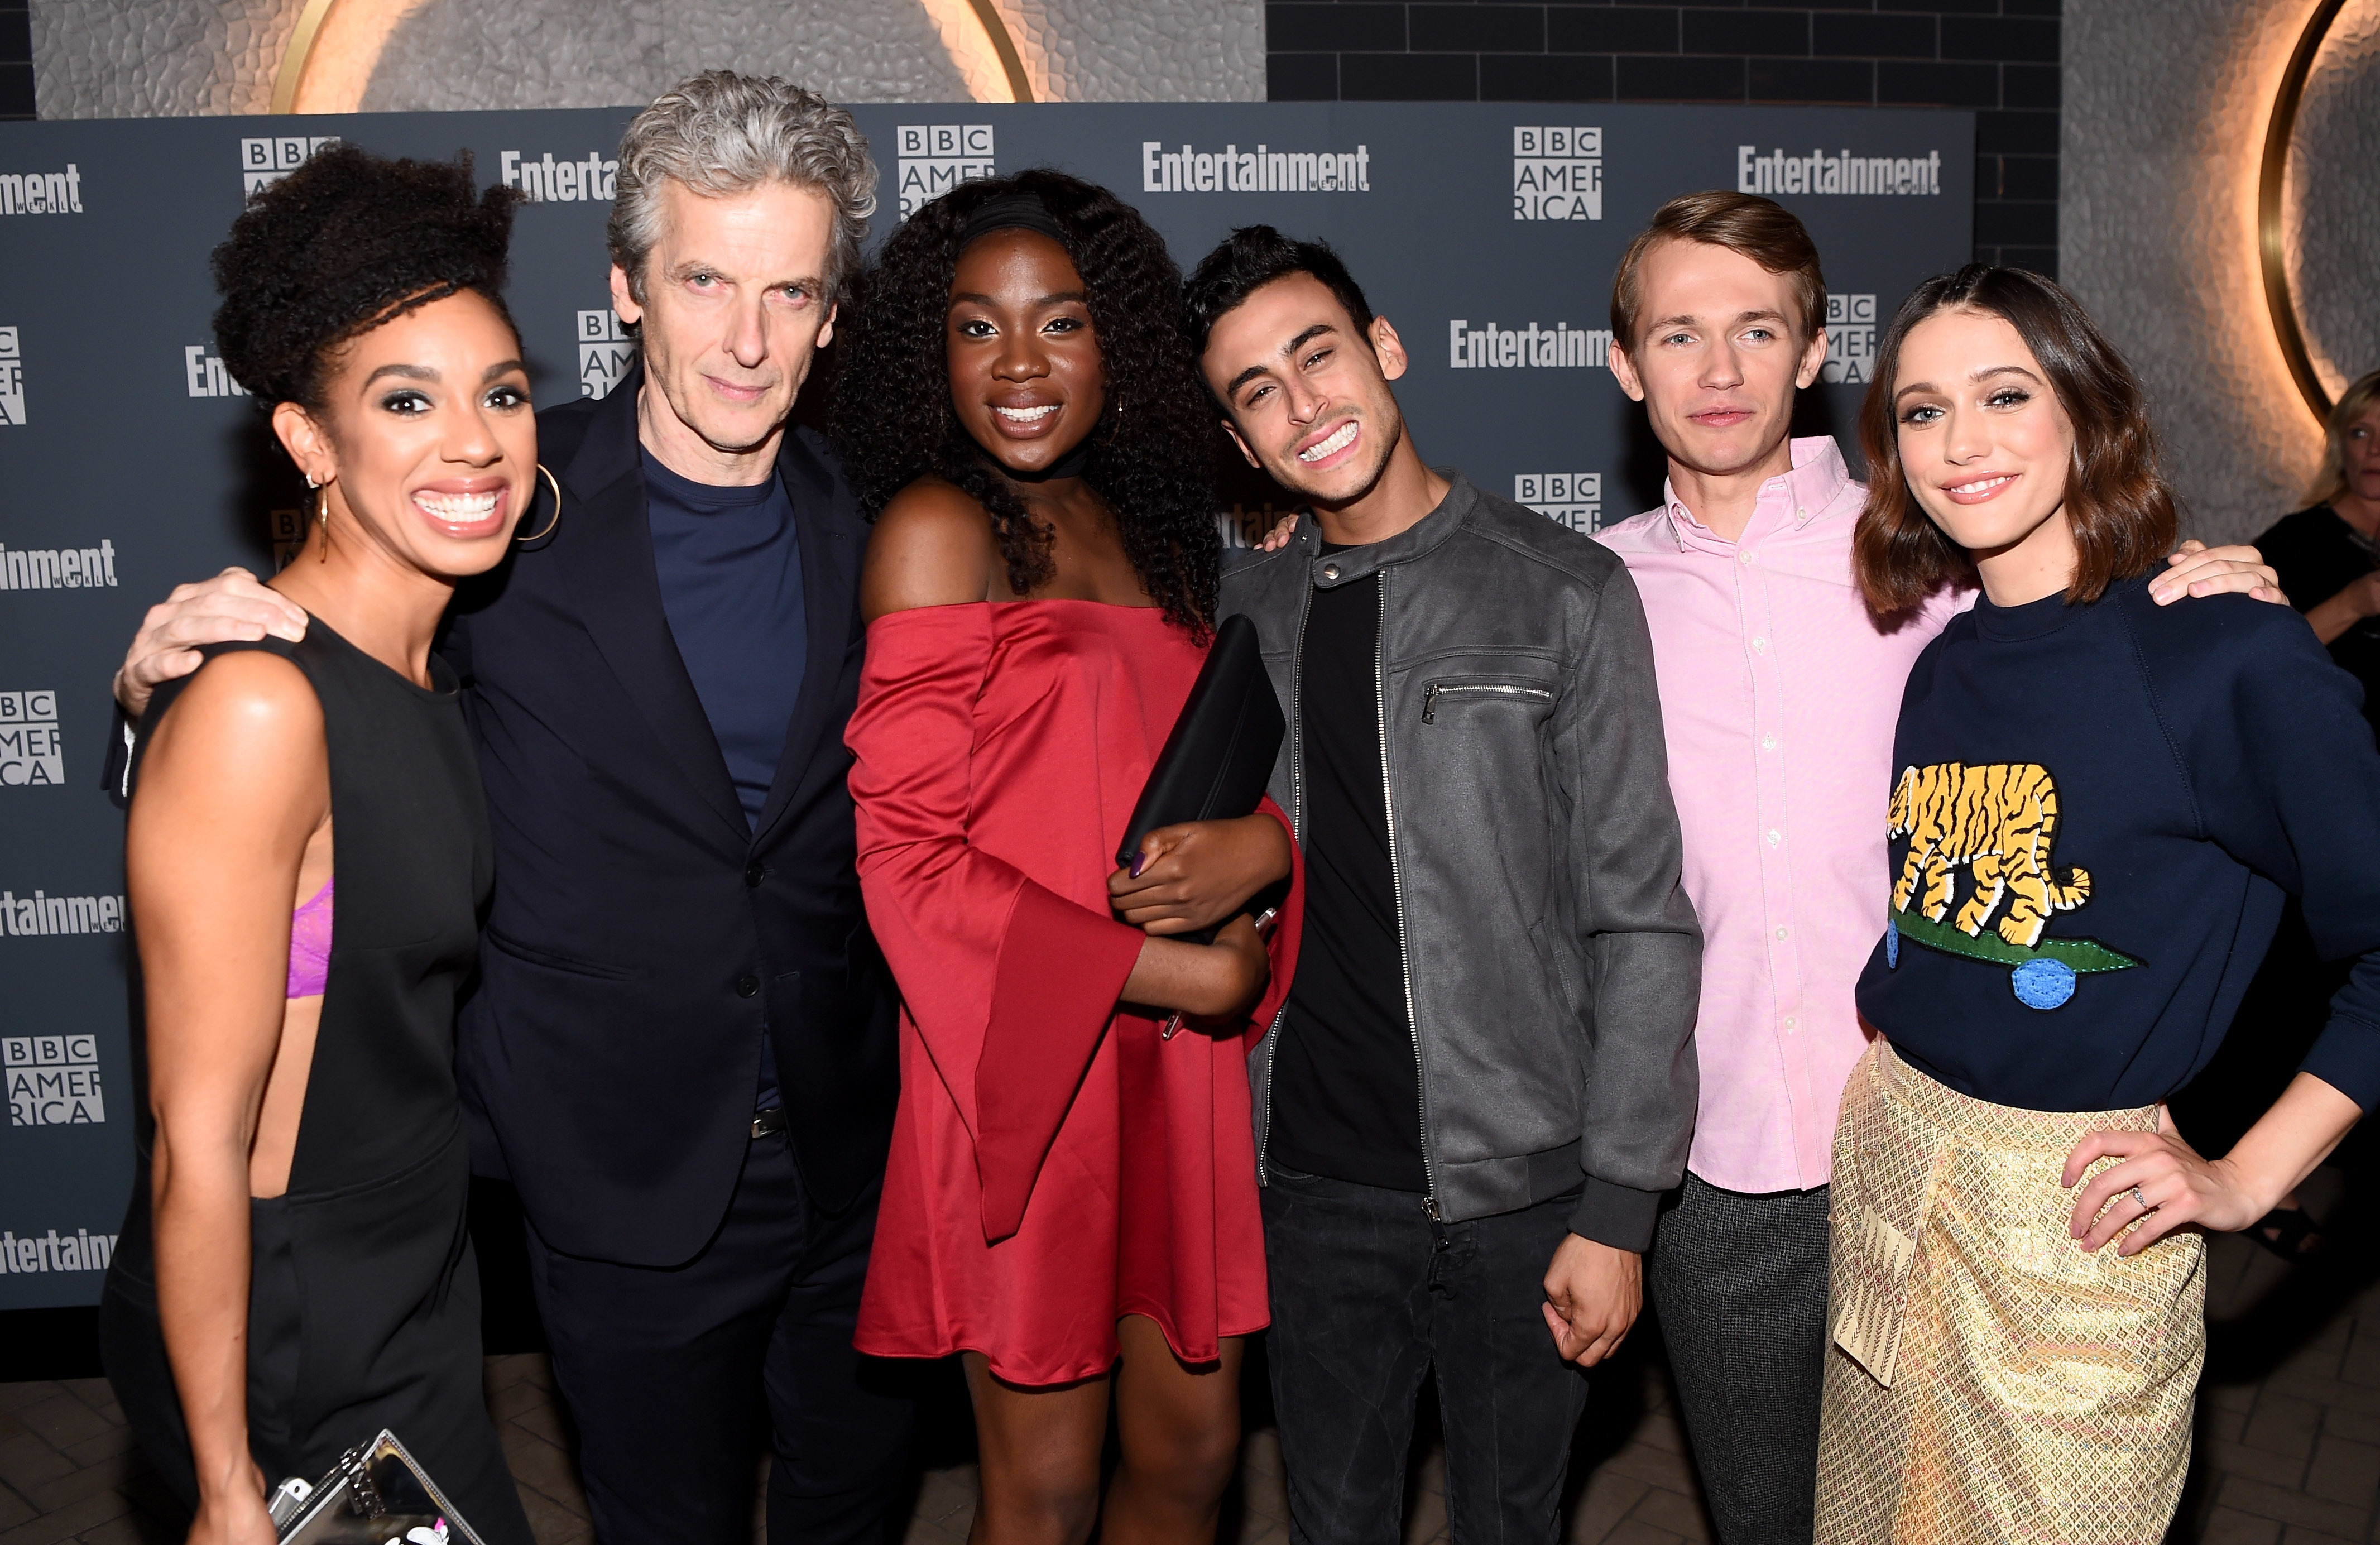 NEW YORK, NY - OCTOBER 06:  Fady Elsayed, Vivan Oparah, Peter Capaldi, Sophie Hopkins, Pearl Mackie and Greg Austin attend EW Hosts An Evening With BBC America on October 6, 2016 in New York City.  (Photo by Dave Kotinsky/Getty Images for Entertainment Weekly)